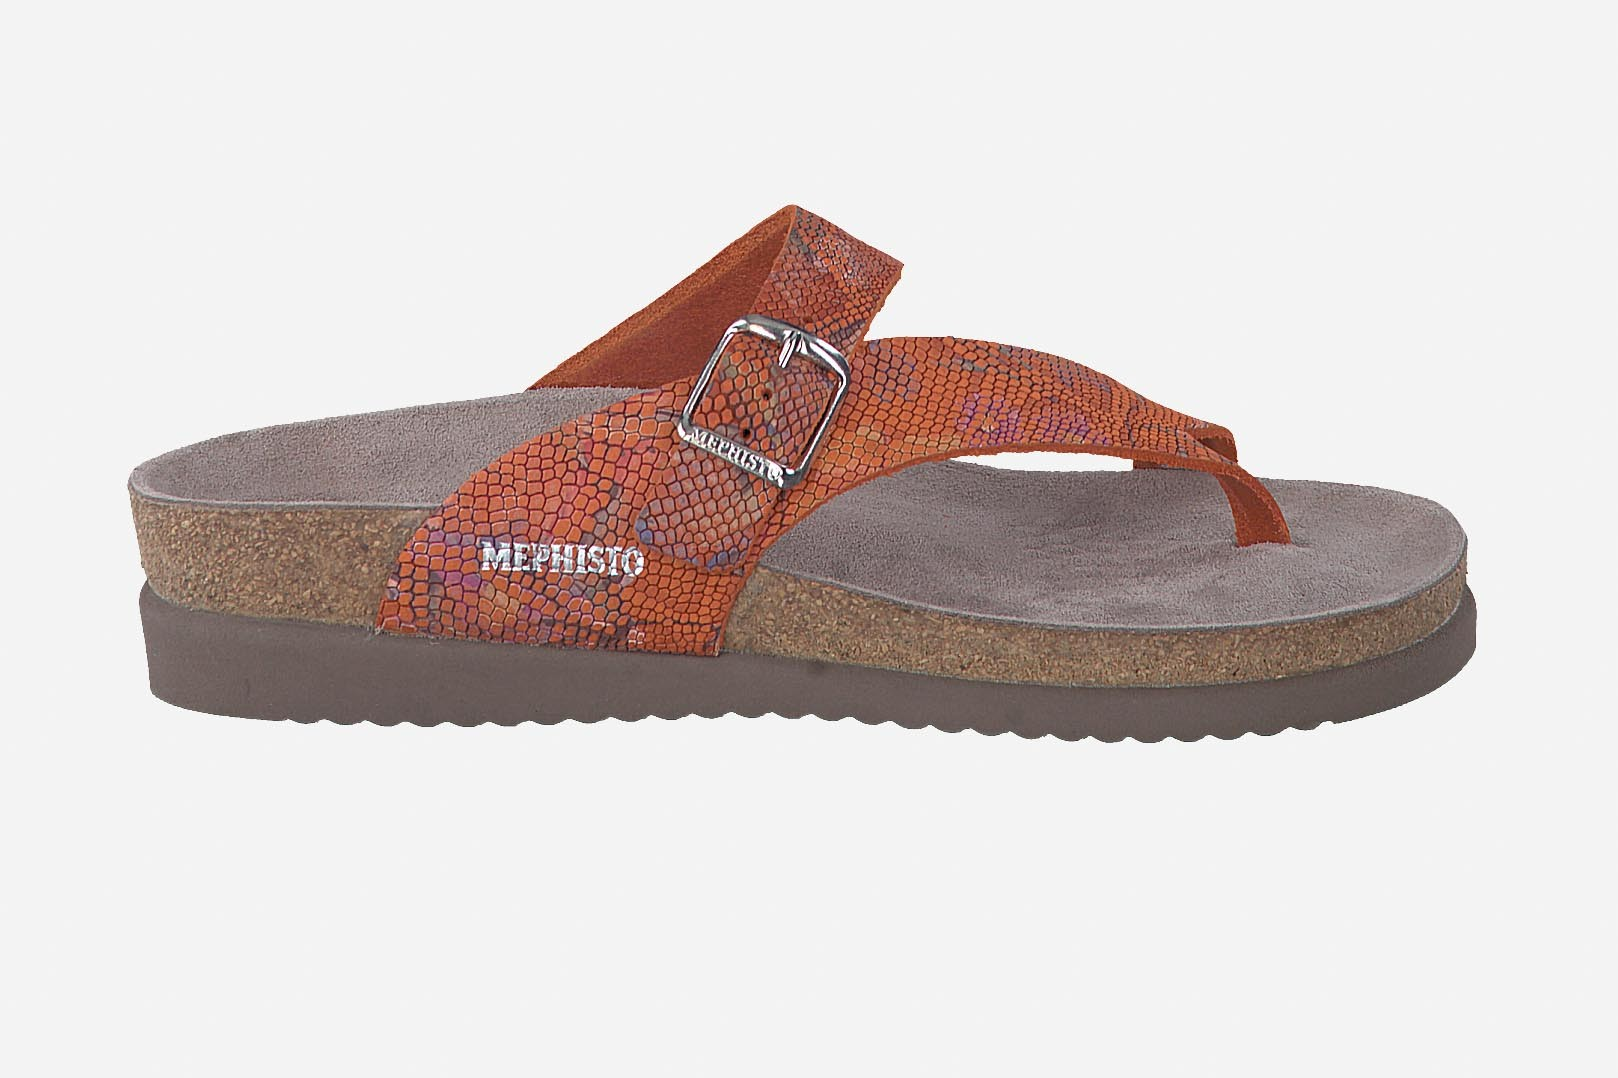 Helen Sun Sandal Mephisto Women S Cork Footbed Sandals